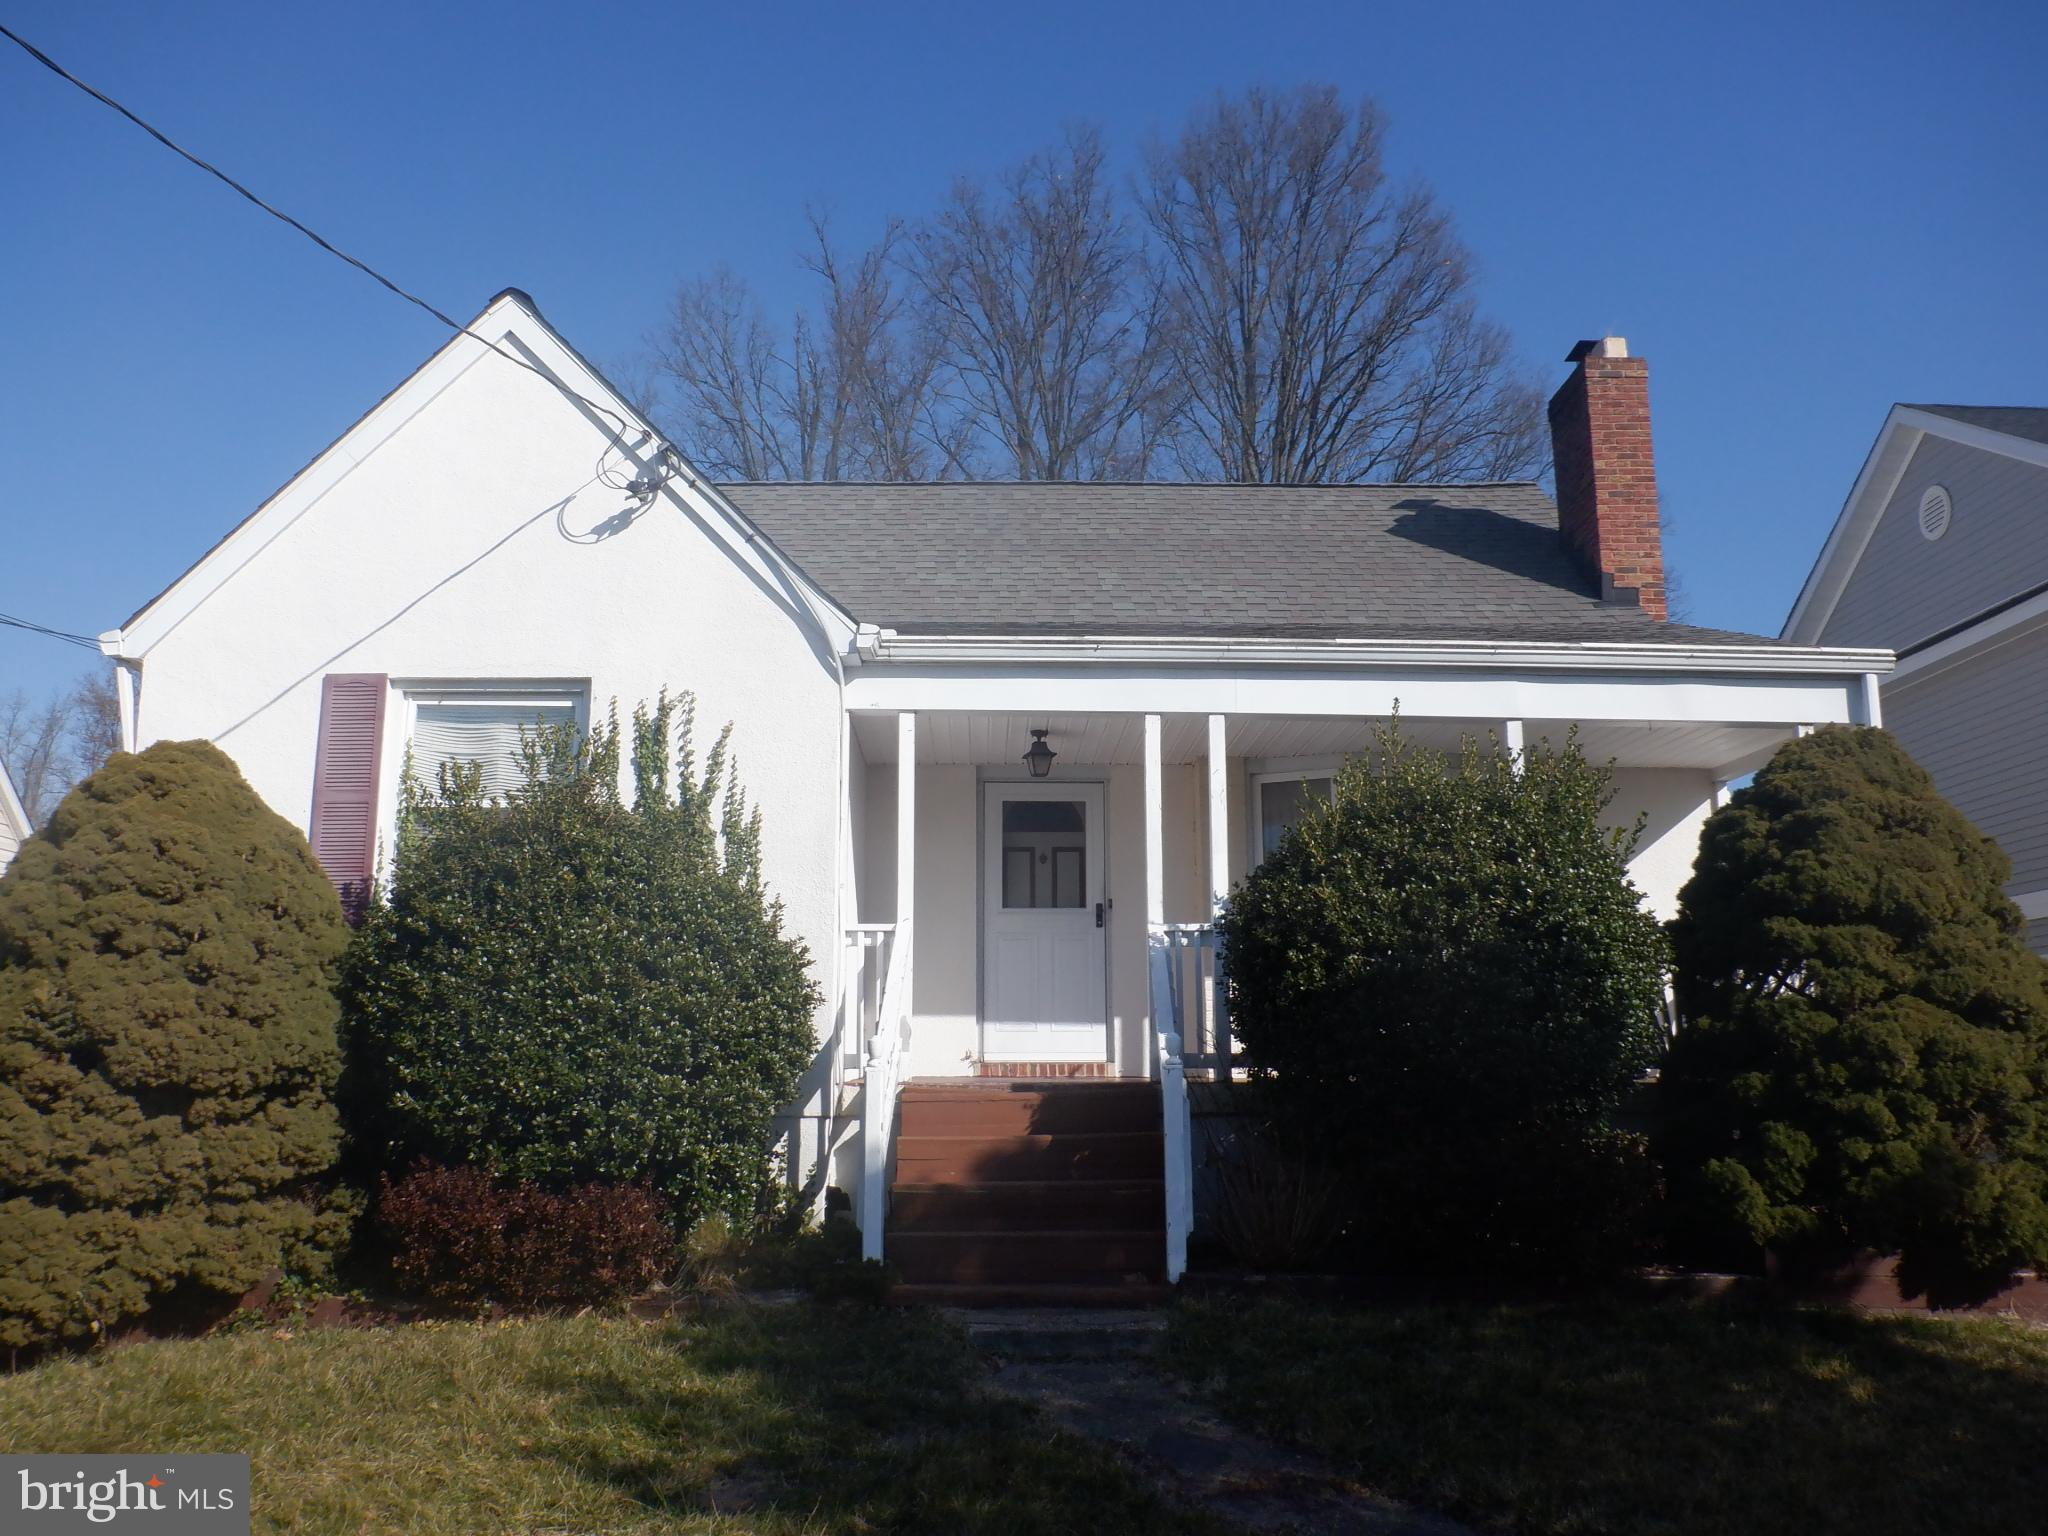 4112 KLAUSMIER AVENUE, Nottingham, Maryland 21236, 3 Bedrooms Bedrooms, ,1 BathroomBathrooms,Single Family,For Sale,4112 KLAUSMIER AVENUE,MDBC516314